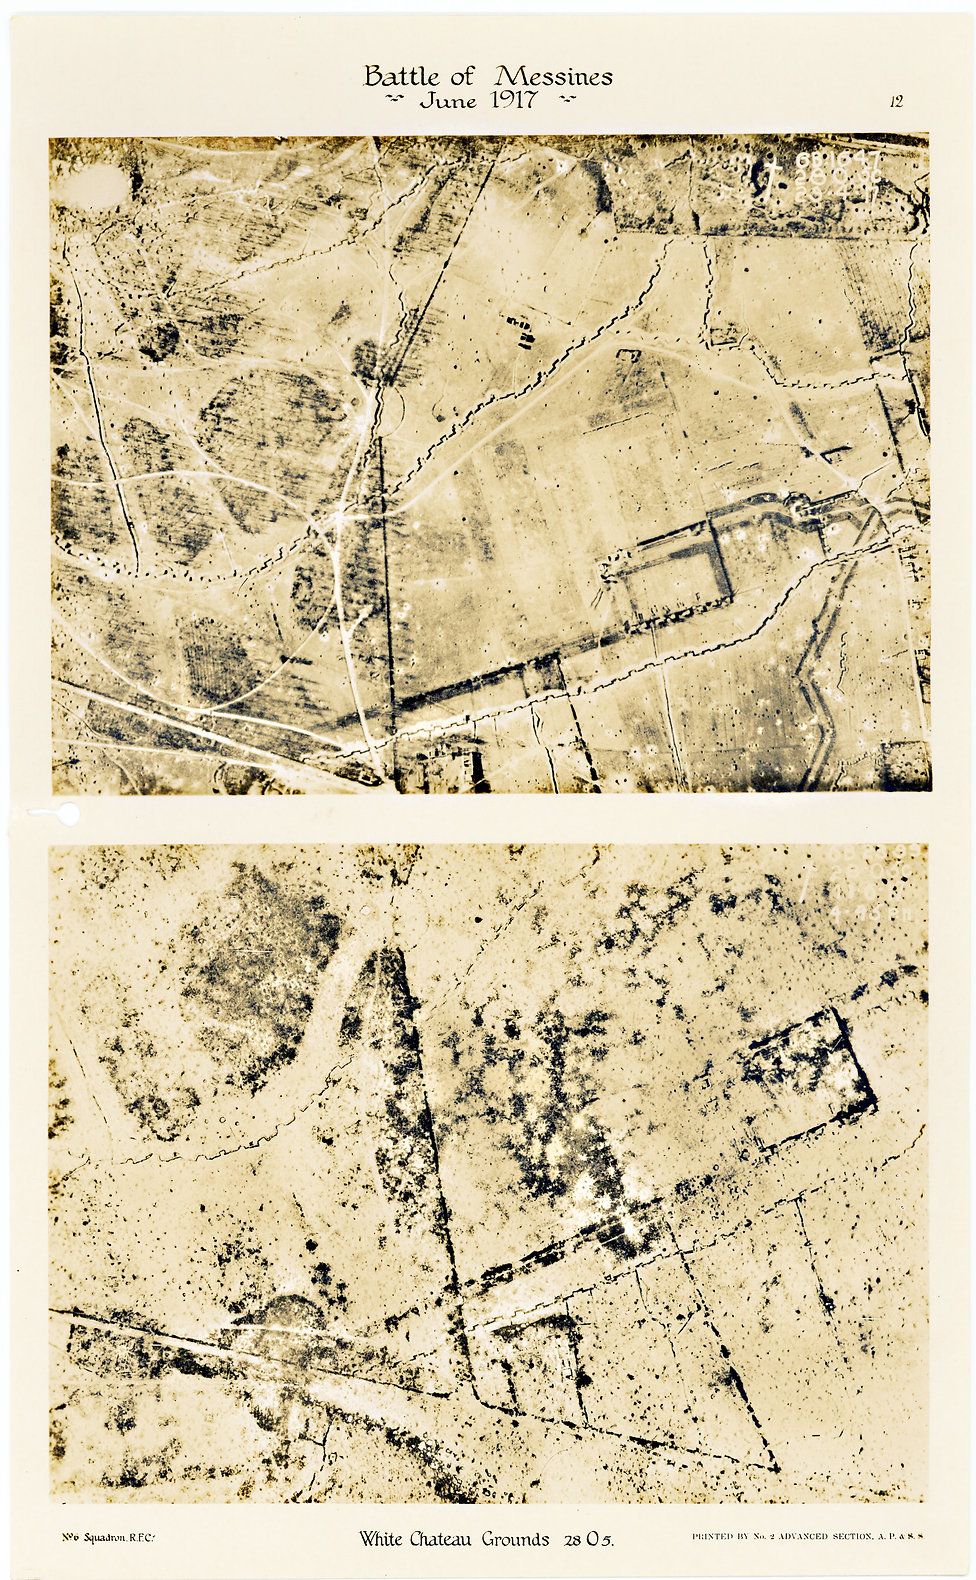 6 Squadron Aerial photos of the White Chateau at Hollebeke, taken before and after the Battle of Messines, 1917